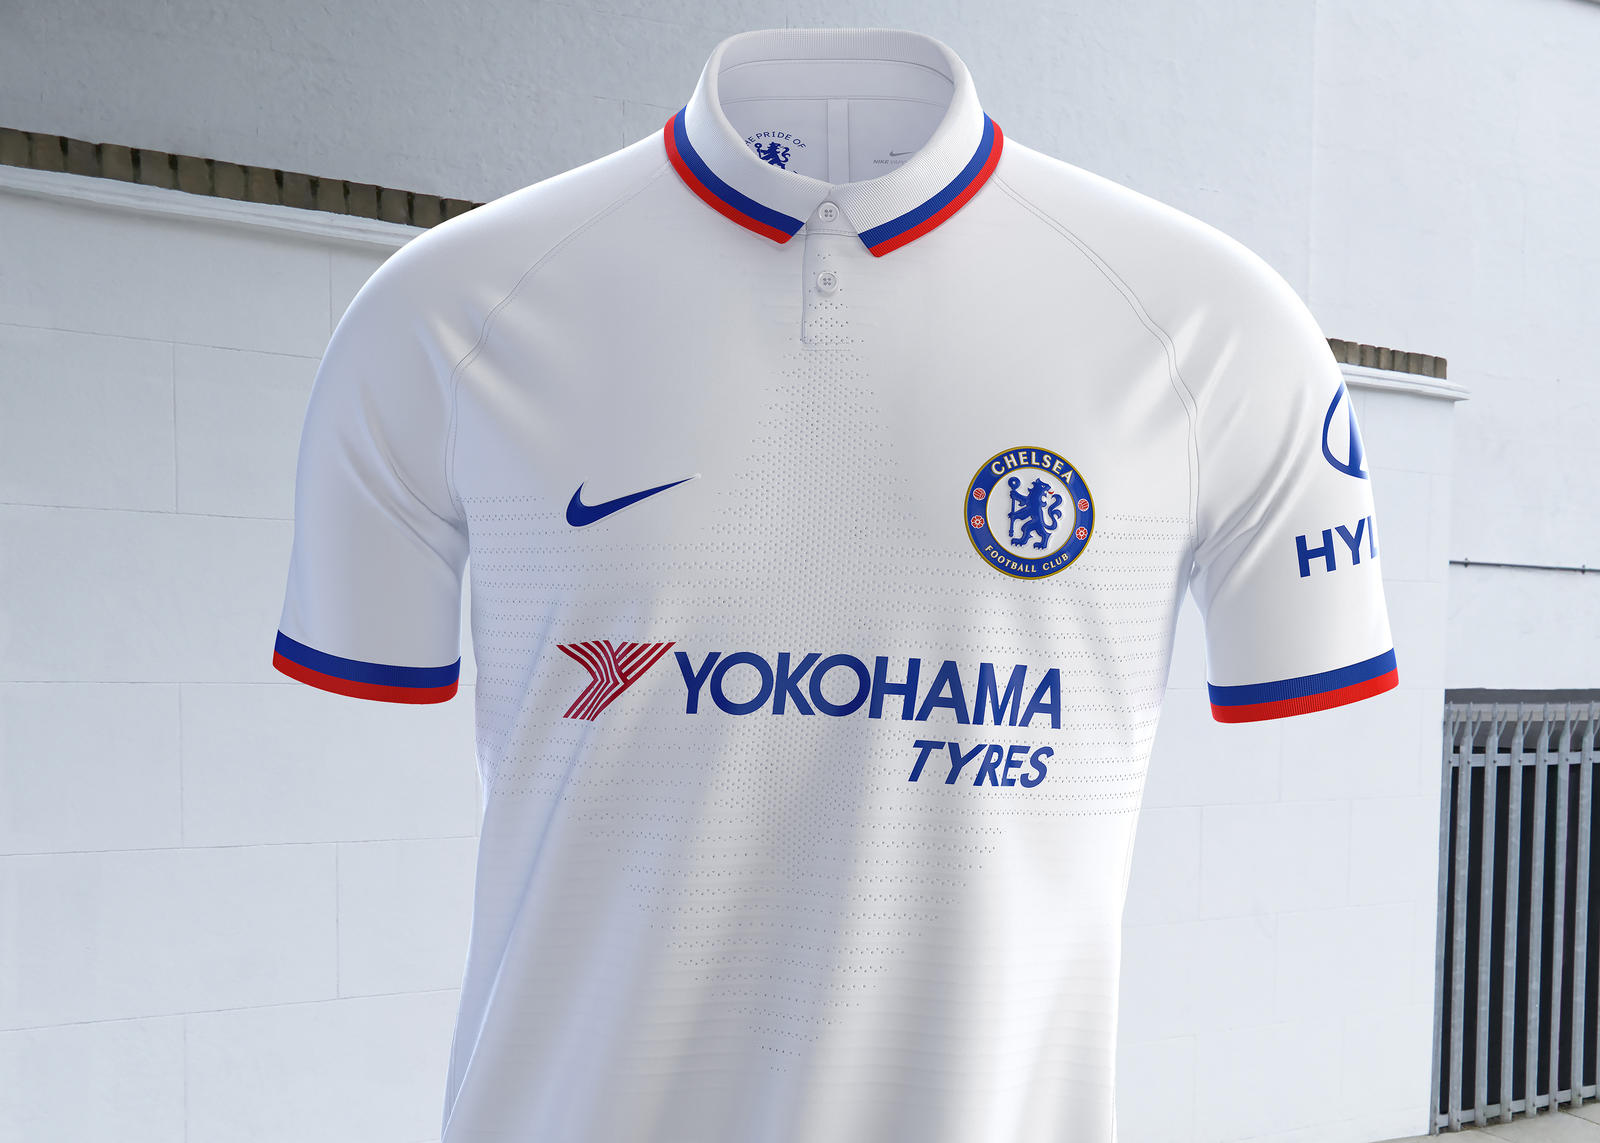 Chelsea Away Kit 2019-20 - Nike News